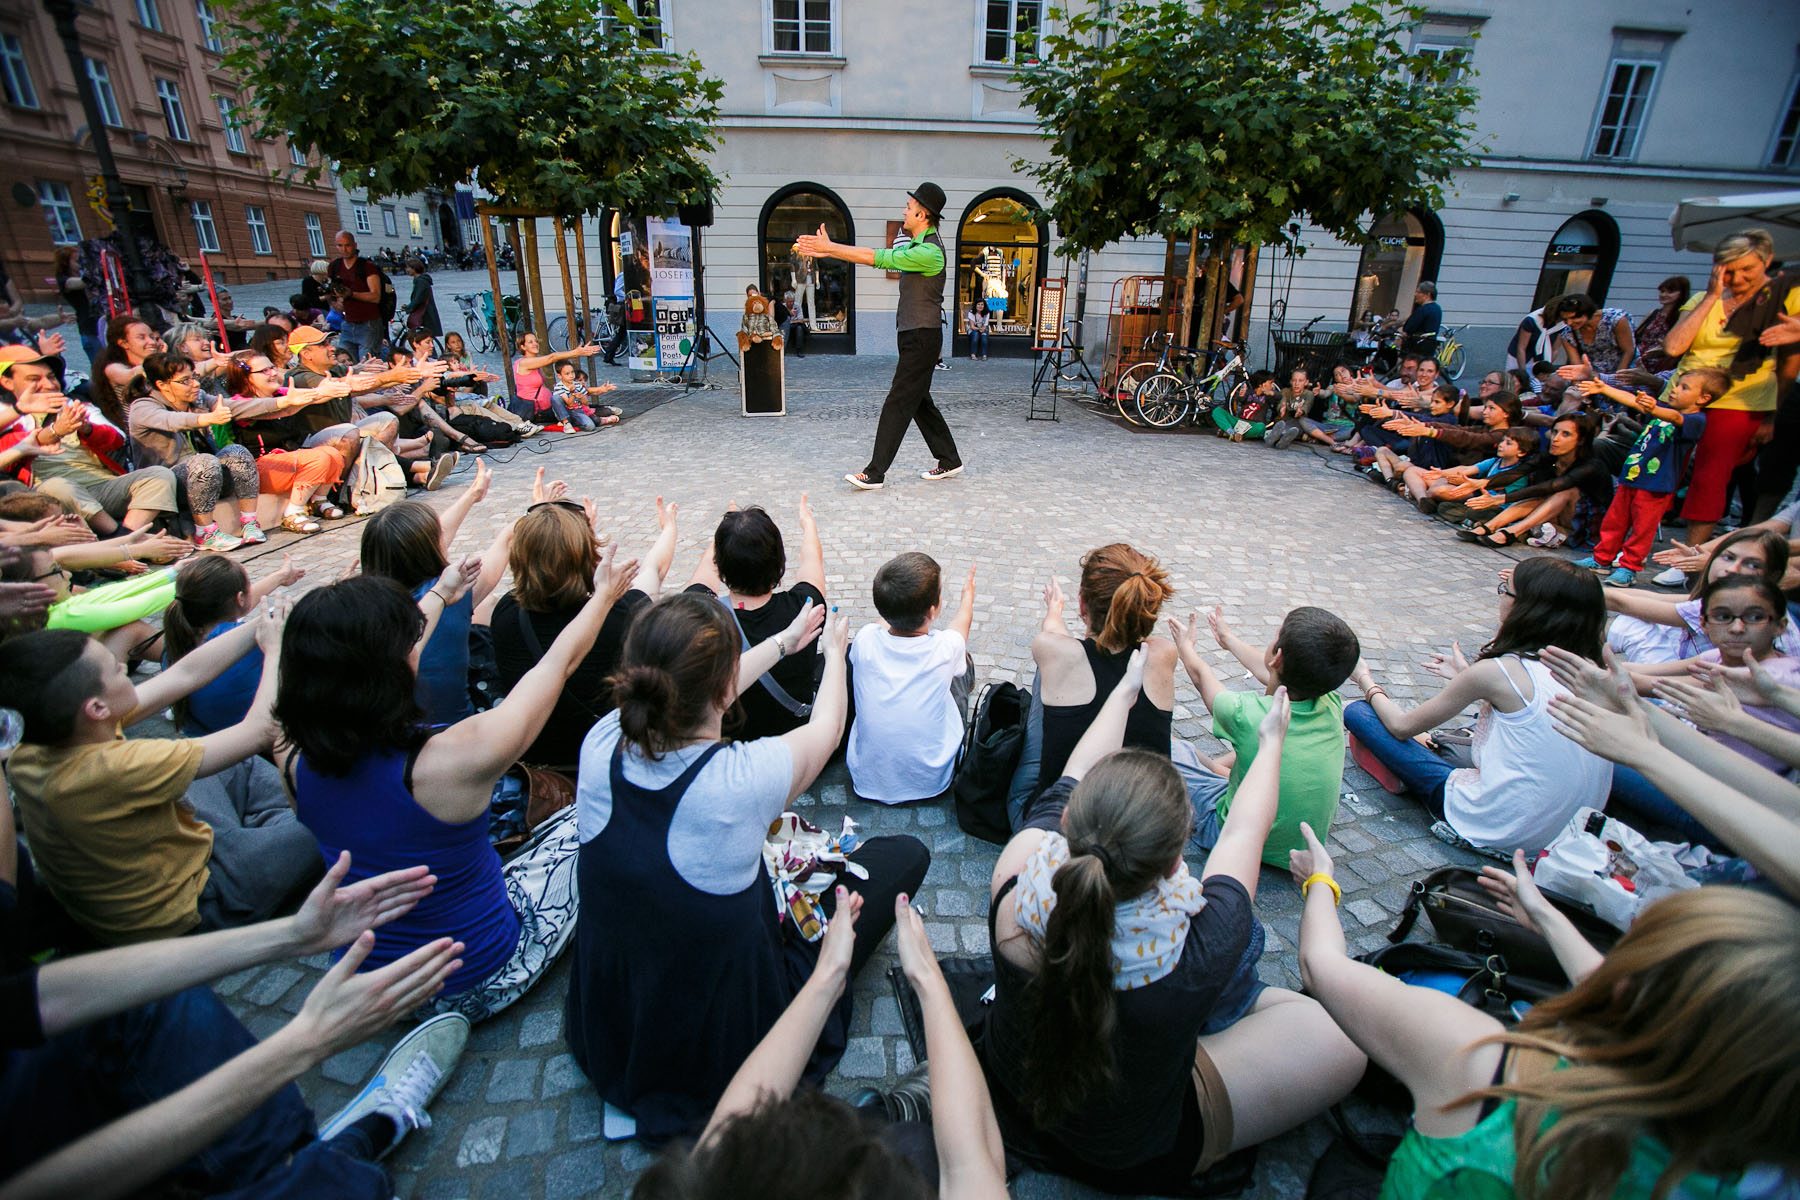 Sam Sebastian (SLO) performs during the Ana Desetnica street arts festival in Ljubljana, Slovenia, July 2, 2014.